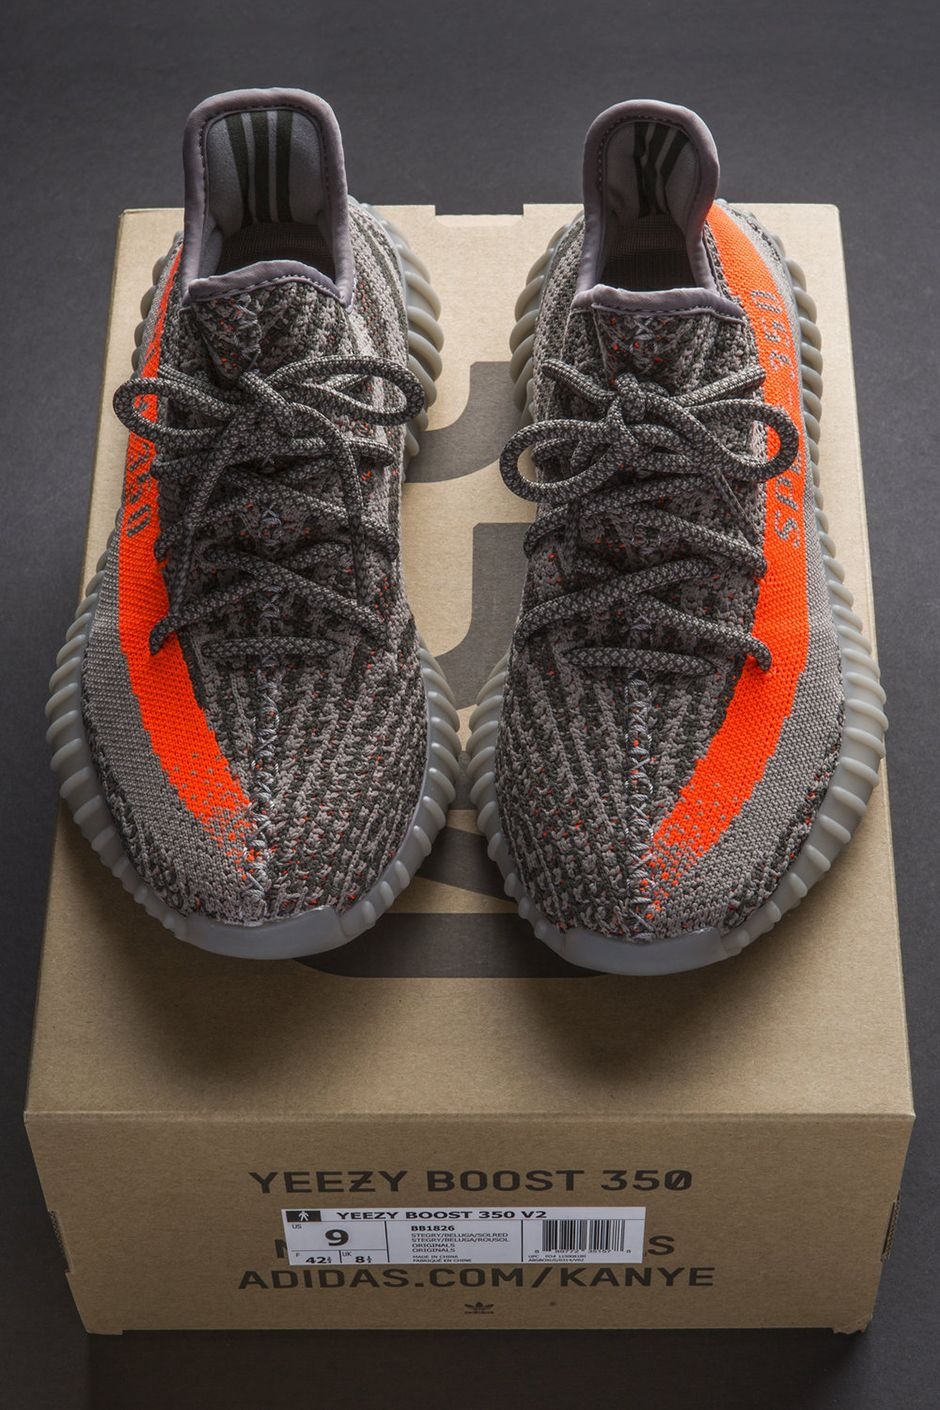 yeezy 350 v2 beluga 2.0 authentication j p h